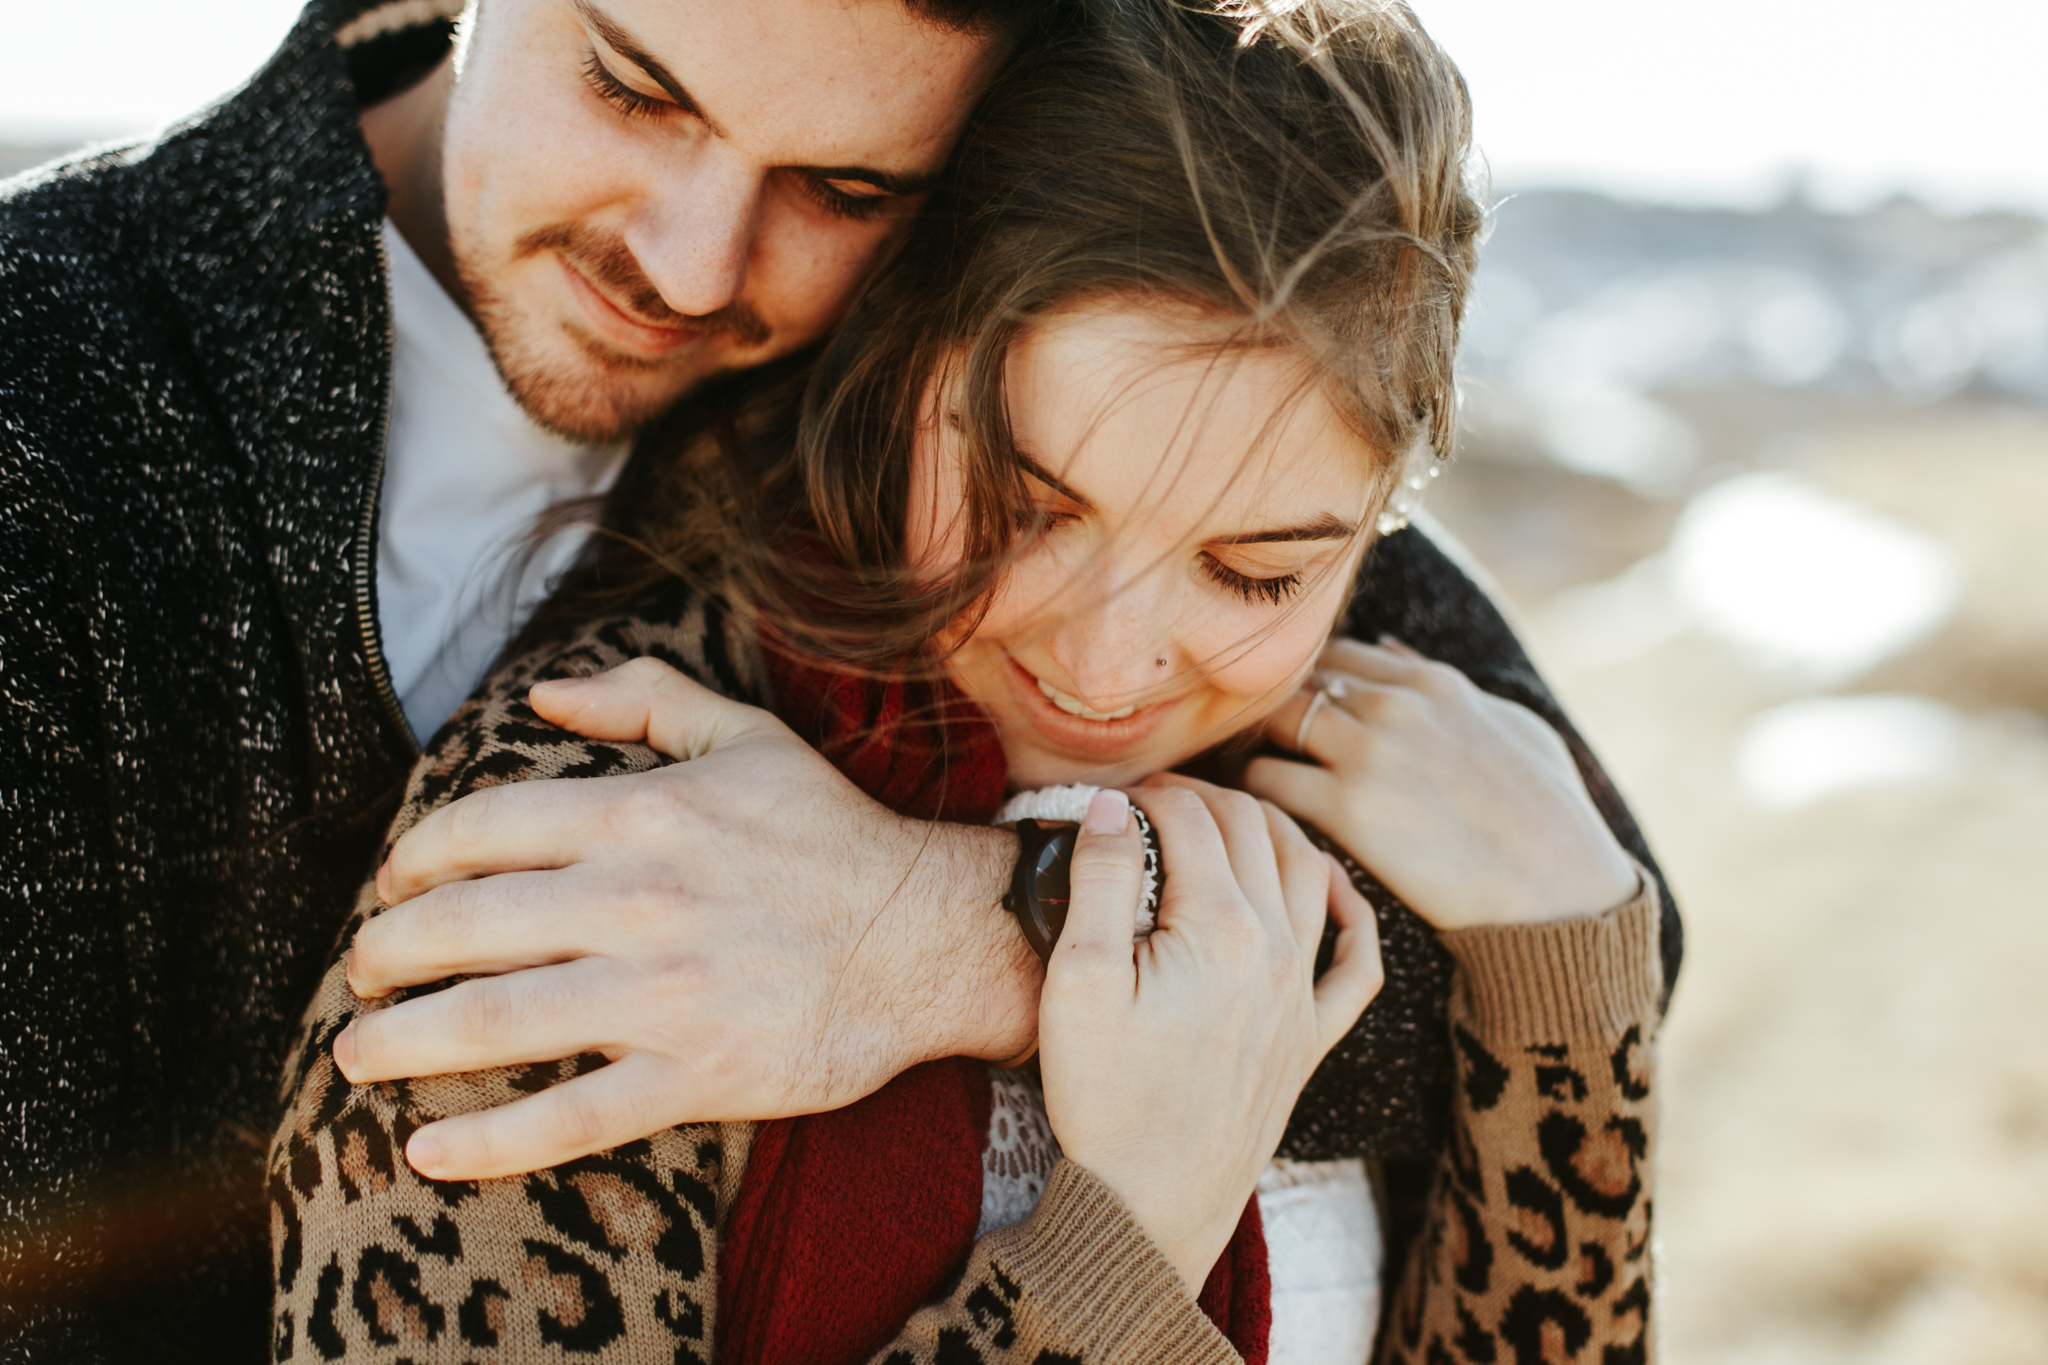 lethbridge-photographer-love-and-be-loved-photography-winter-engagement-emma-tanner-picture-image-photo-7.jpg